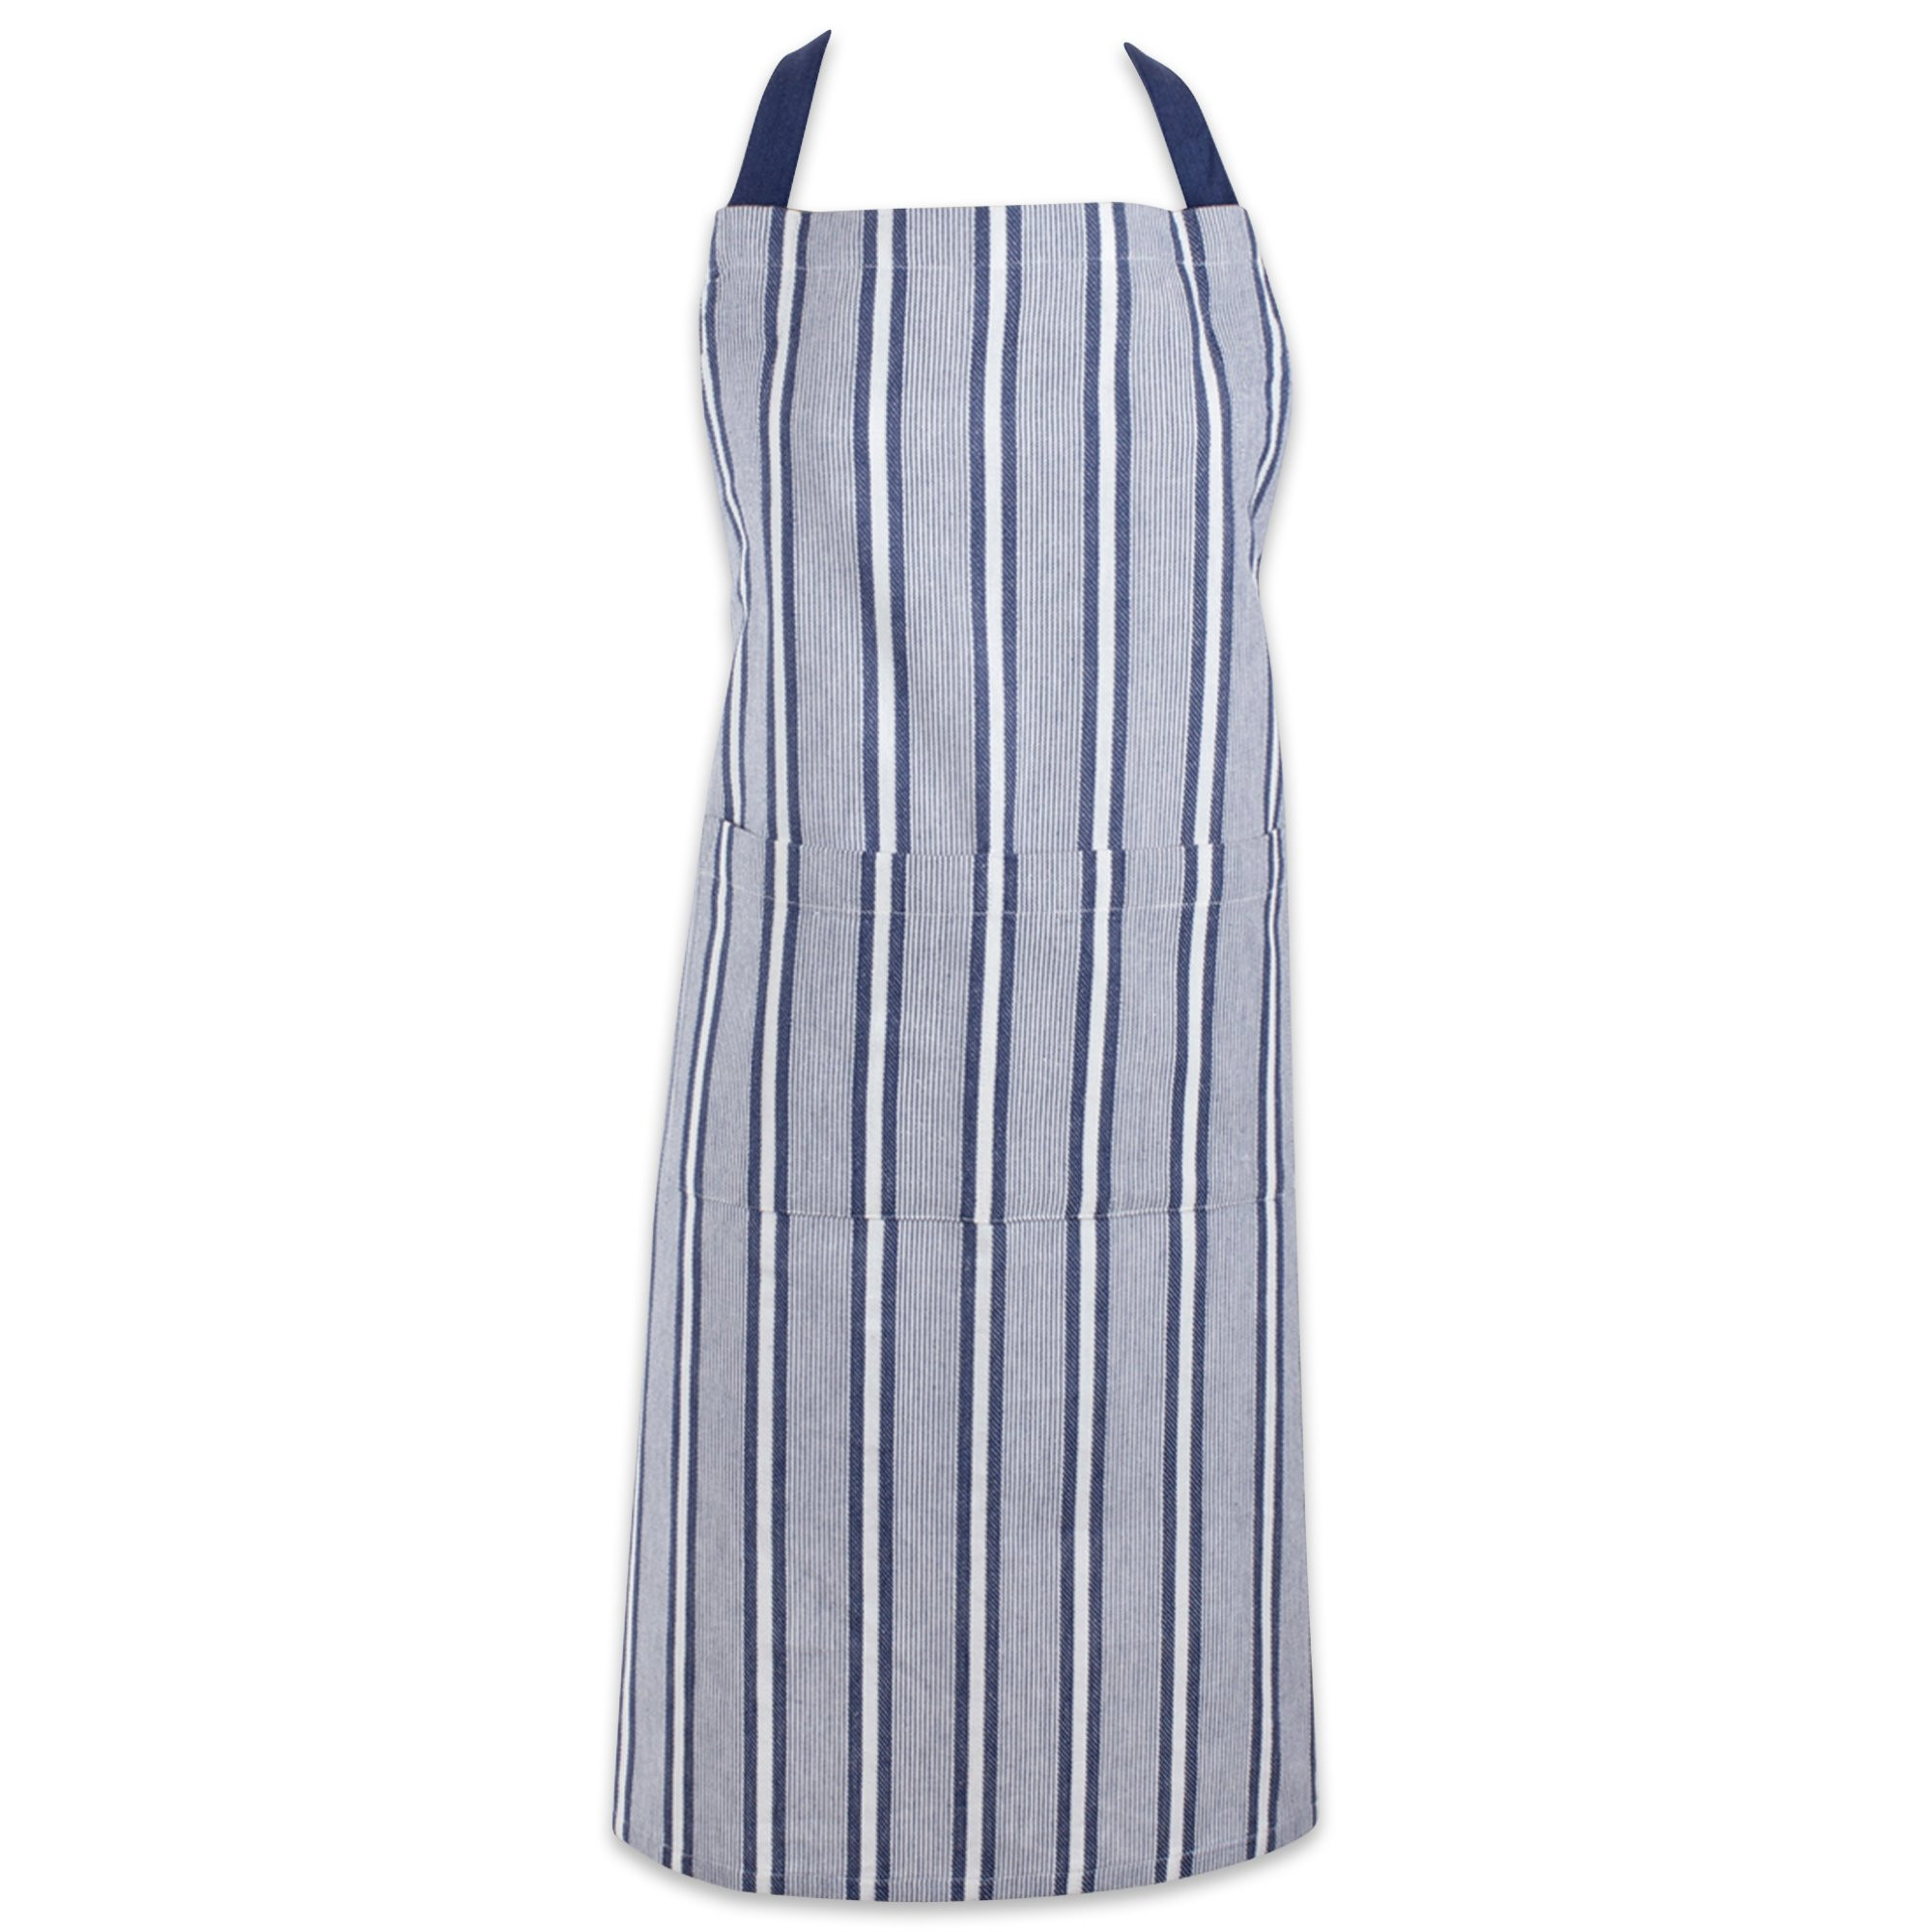 DII Cotton Adjustable Stripe Chef Bib Apron with Pockets and Extra Long Ties, 32 x 28'', Professional Men and Women Restaurant Kitchen Apron for Cooking, Baking, BBQ-French Blue